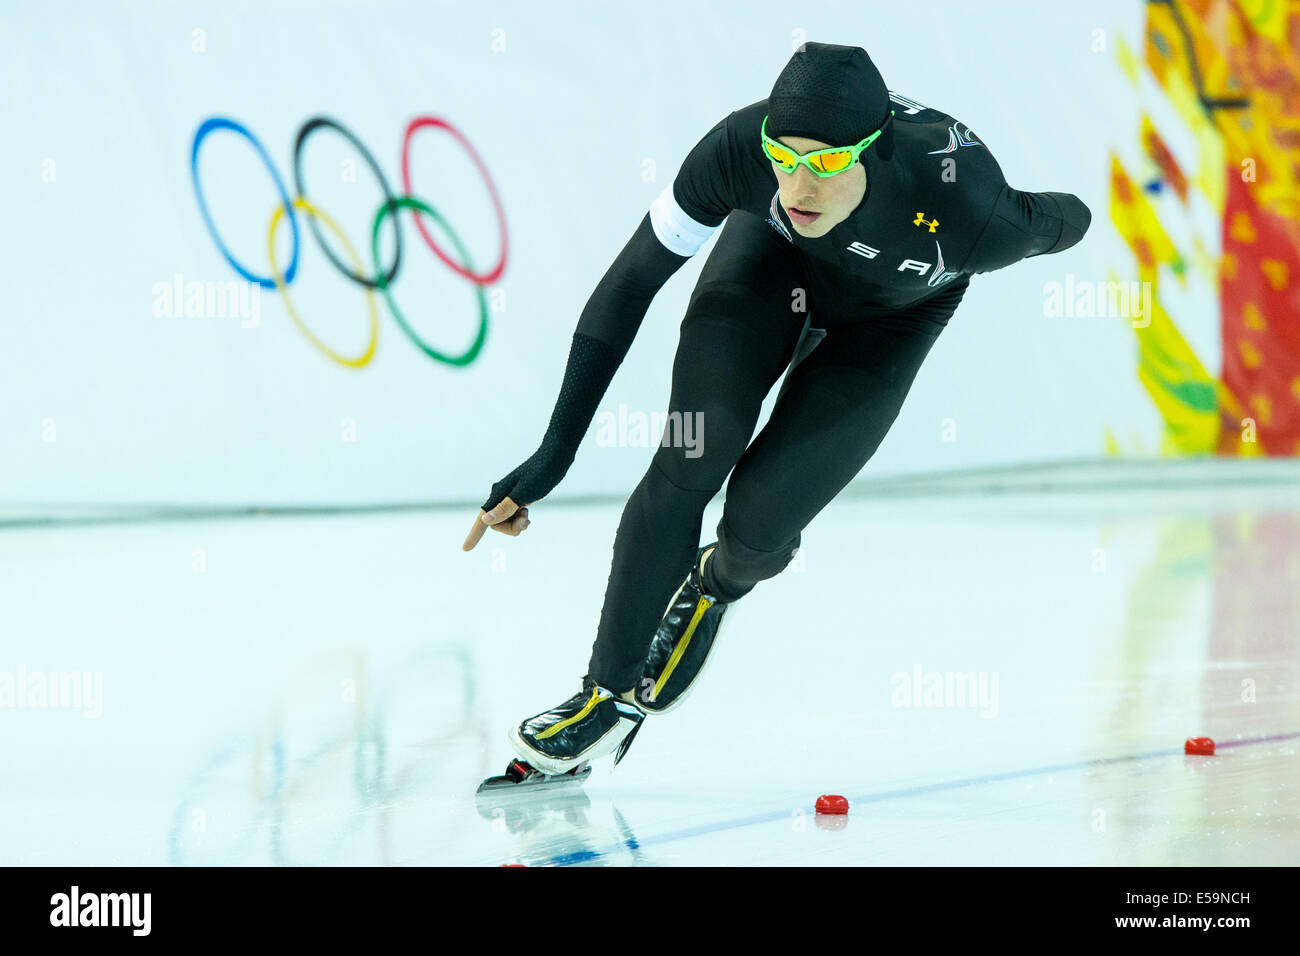 Emery Lehman (USA) competing in Men's 5000m Speed Skating at the Olympic Winter Games, Sochi 2014 - Stock Image